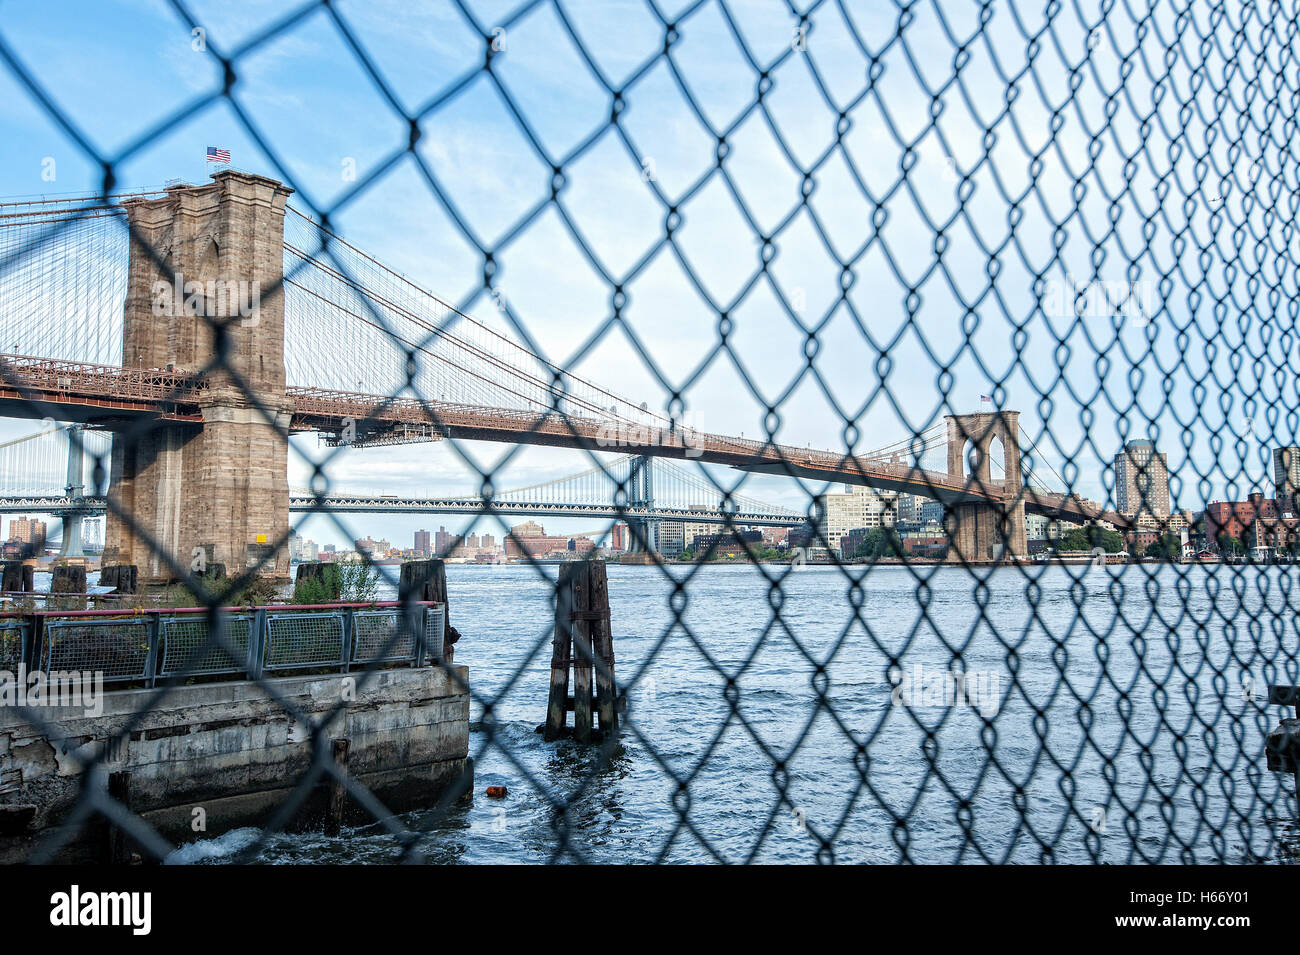 View of Brooklyn Bridge, East River, connects boroughs Manhattan and Brooklyn, Manhattan, New York City - Stock Image